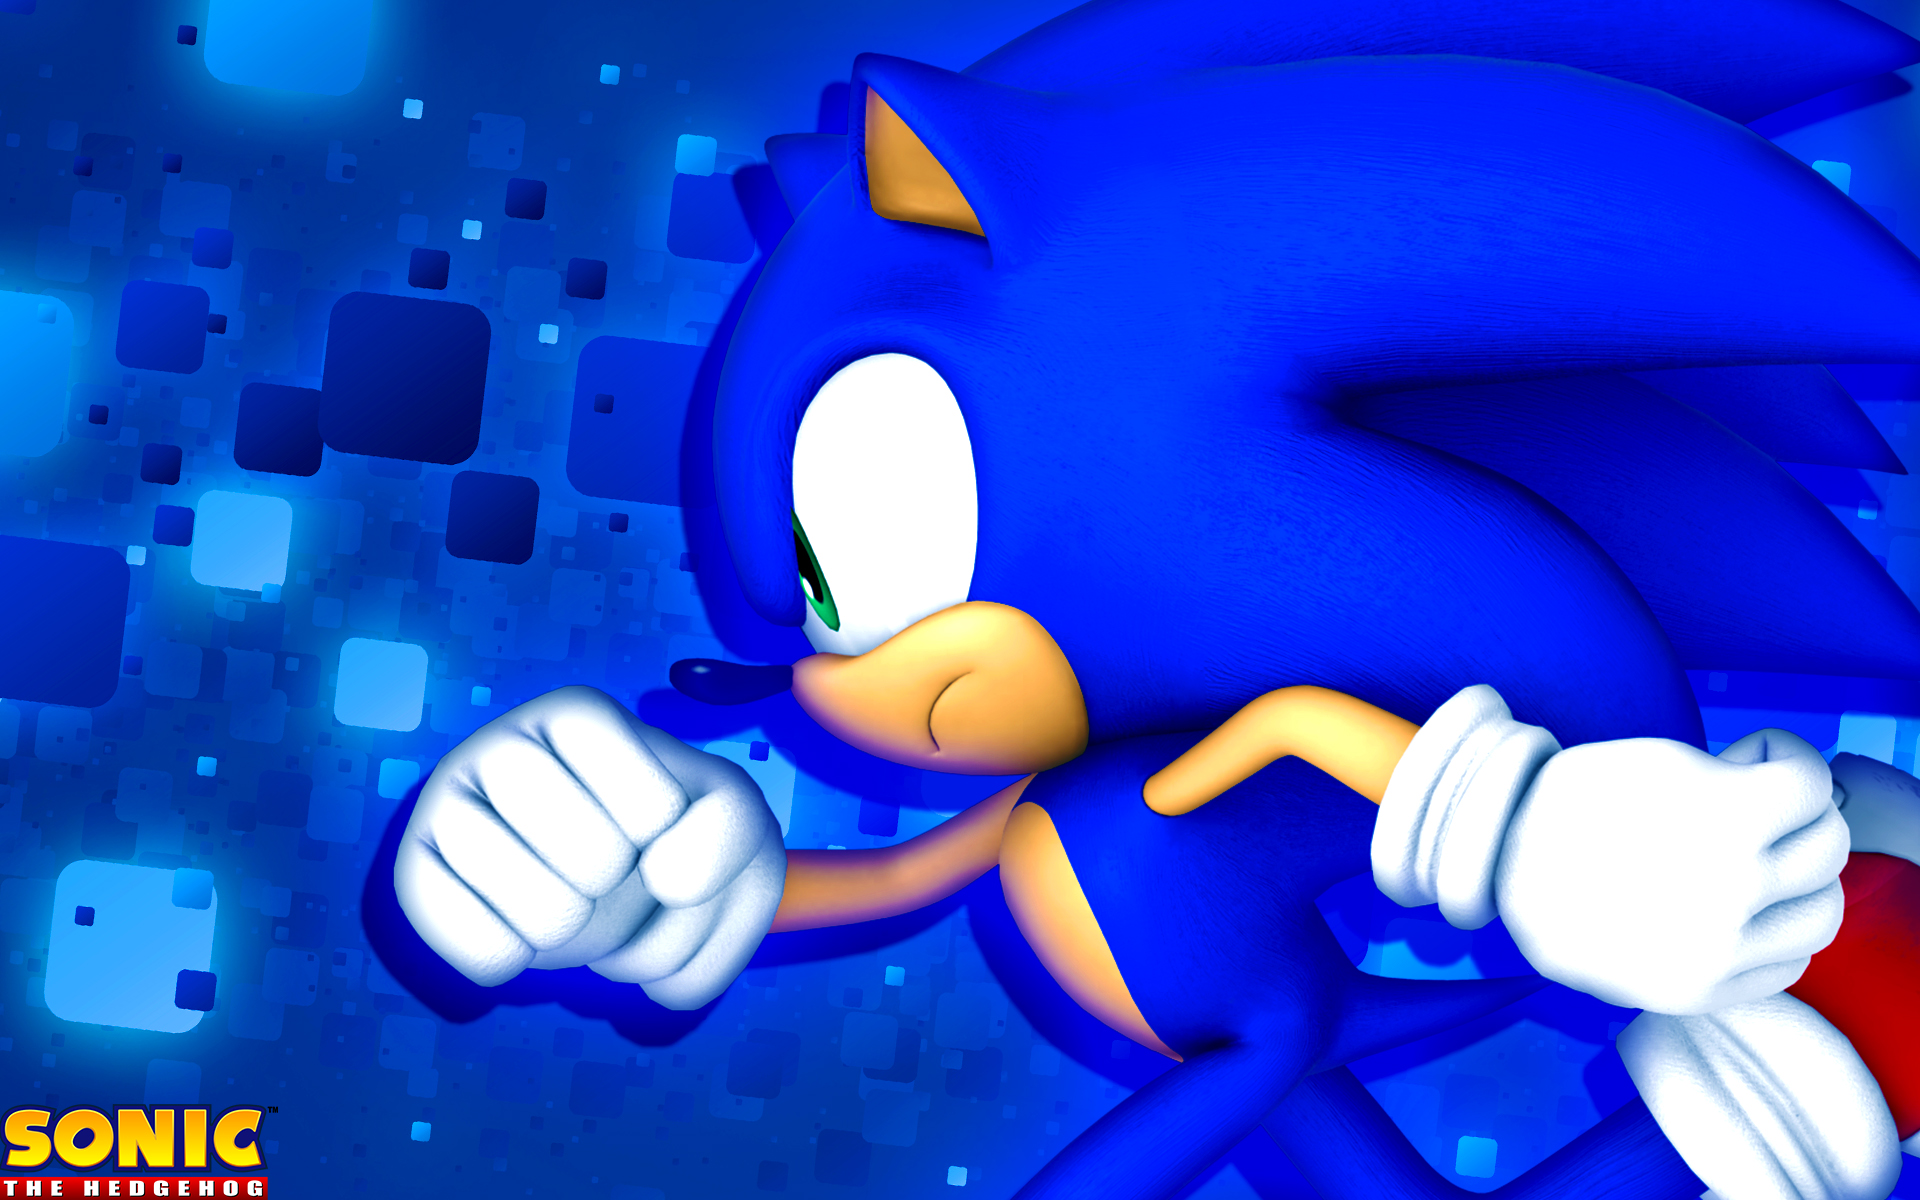 Sonic The Hedgehog 2006 Wallpapers